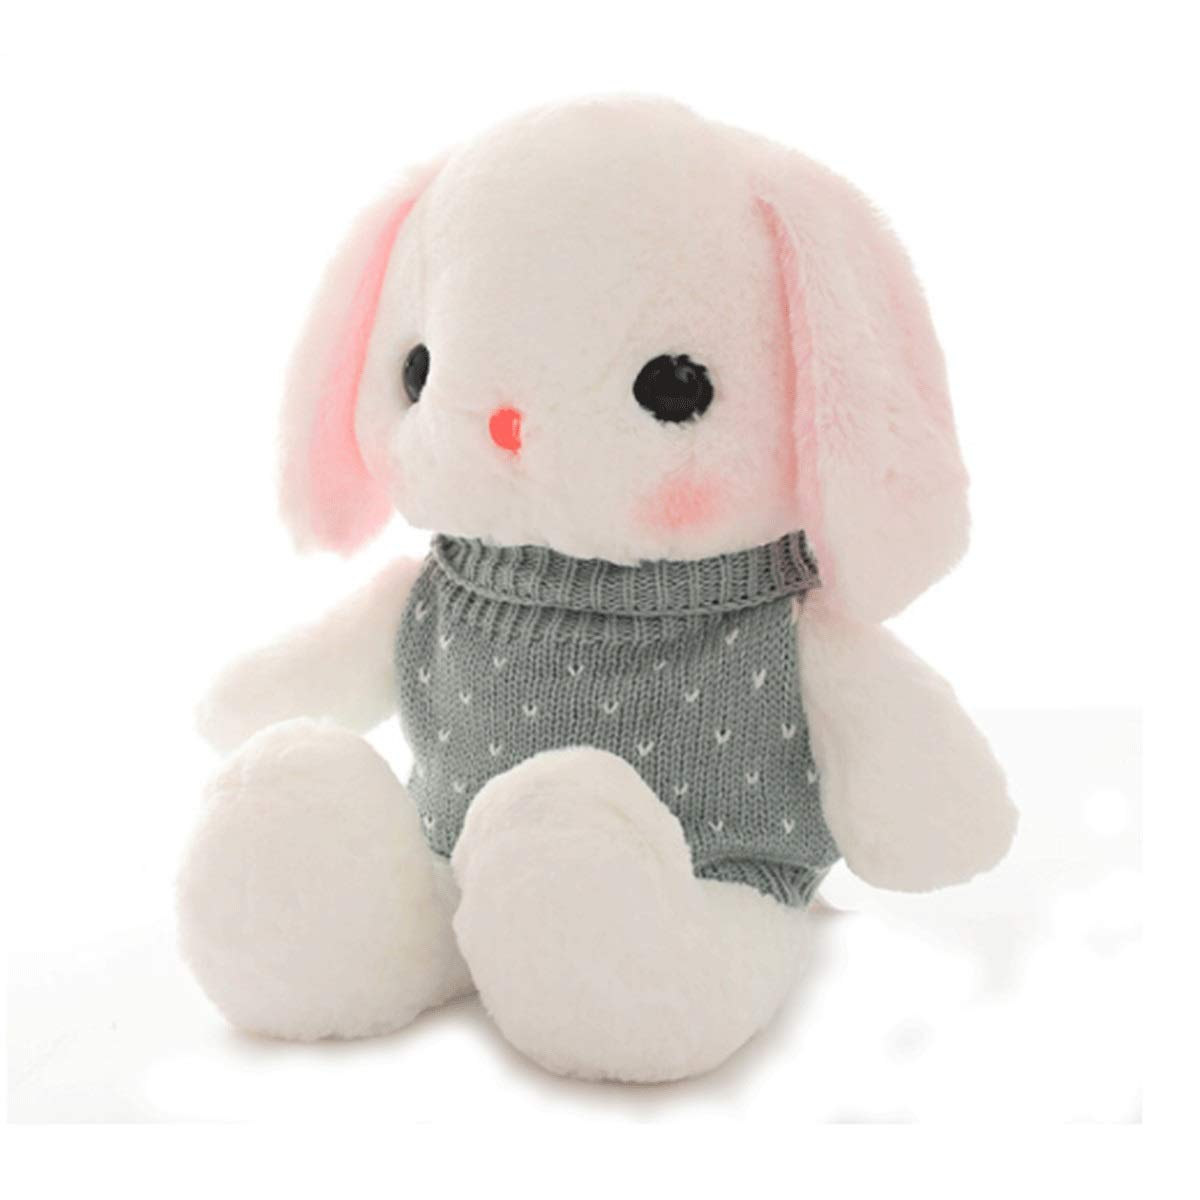 Light green sweater 50cm Light green sweater 50cm Xionghaizi Plush Toys, Small White Rabbit Plush Toys, Rabbit Dolls, Rogue Rabbit Sleeping Pillows, Rag Dolls, Boys and Girls Birthday Gifts, Multiple colors and Sizes, BES